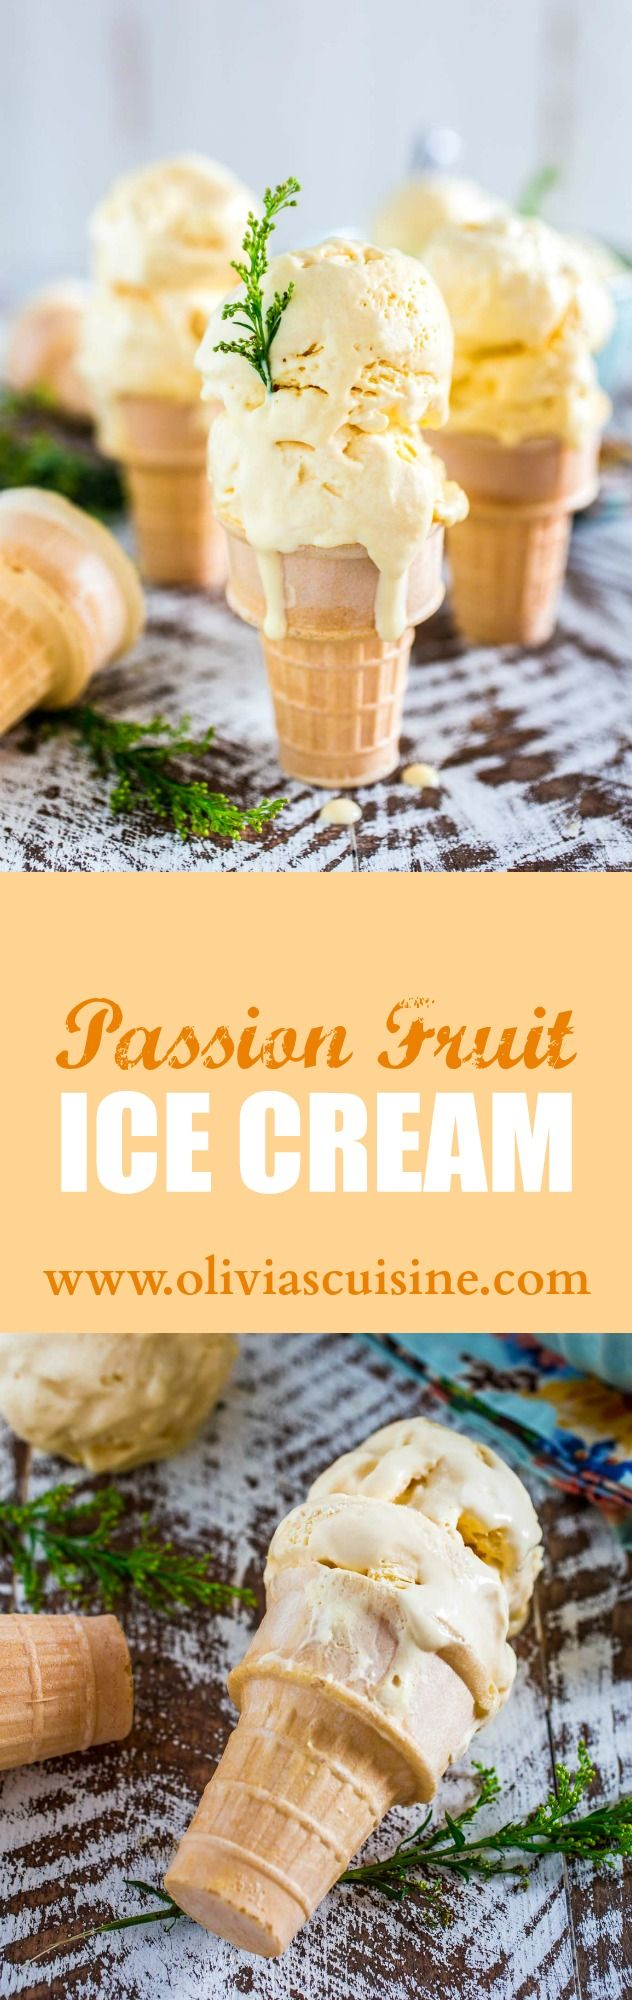 Coffee ice cream, Ice cream recipes and Blackberry ice cream